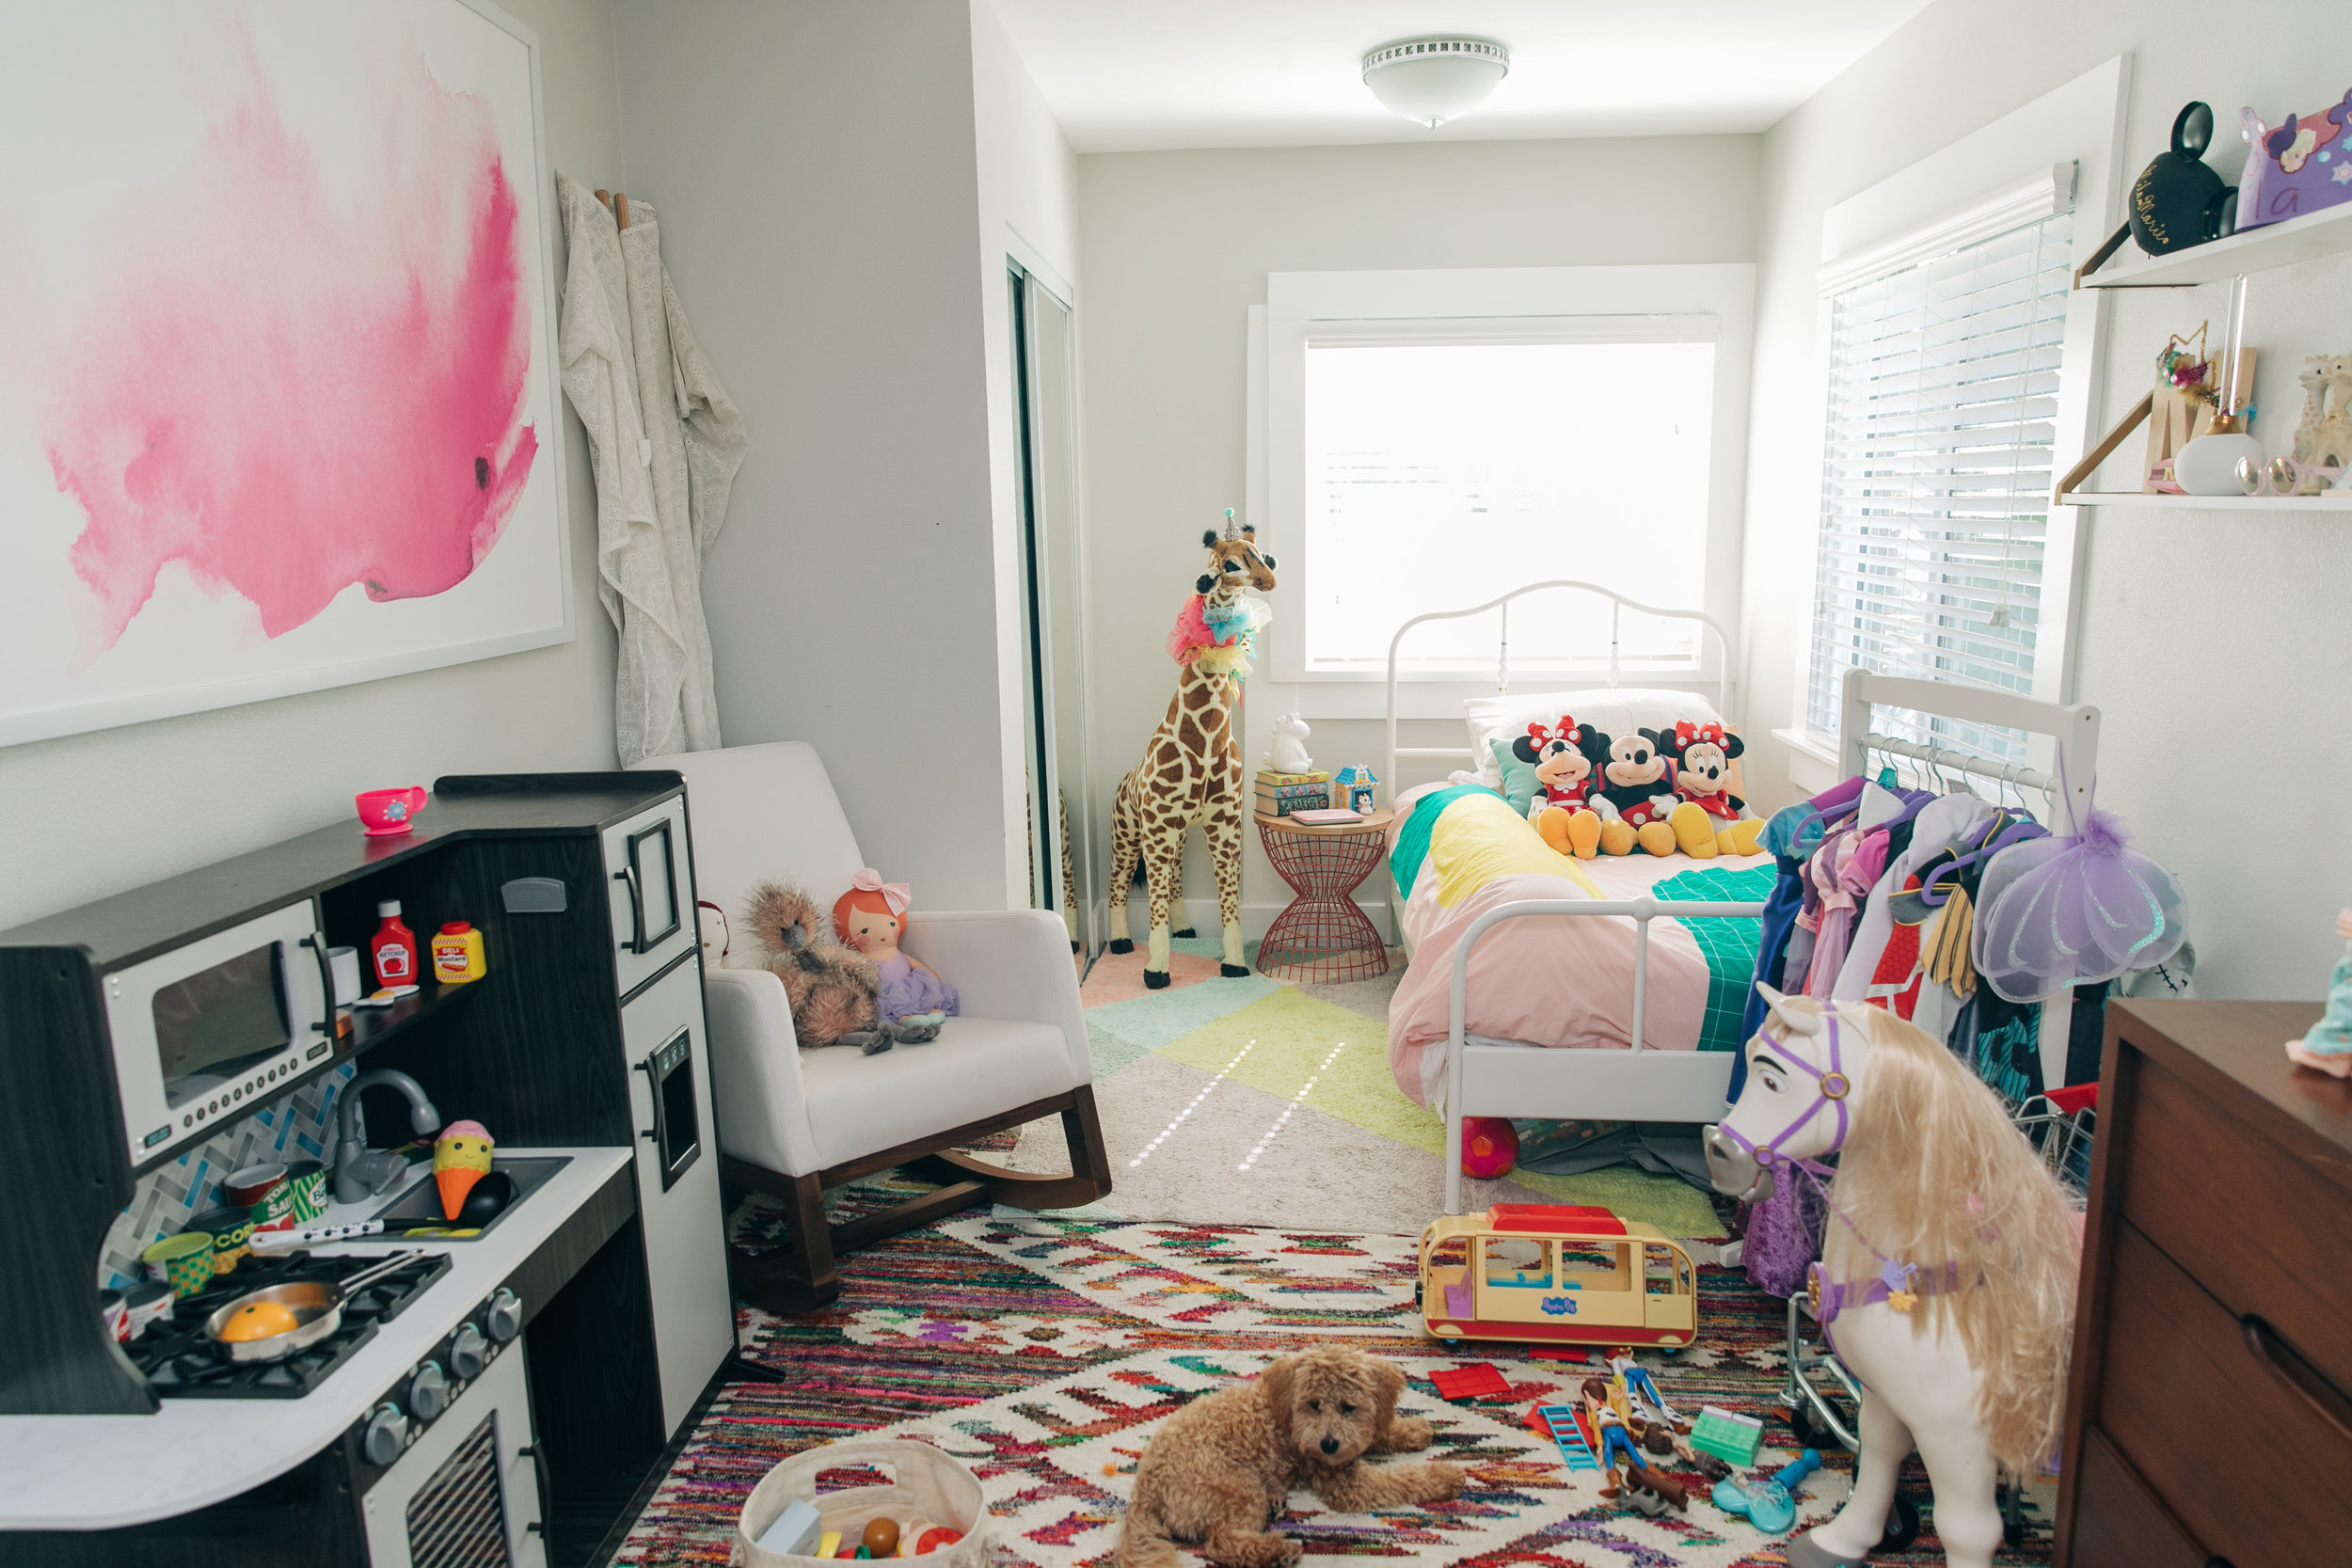 Here you can see to the left is the large art print that used to hang above Mila's crib. To the right you can see just the corner of Mila's dresser. I spy Marley too hanging out!